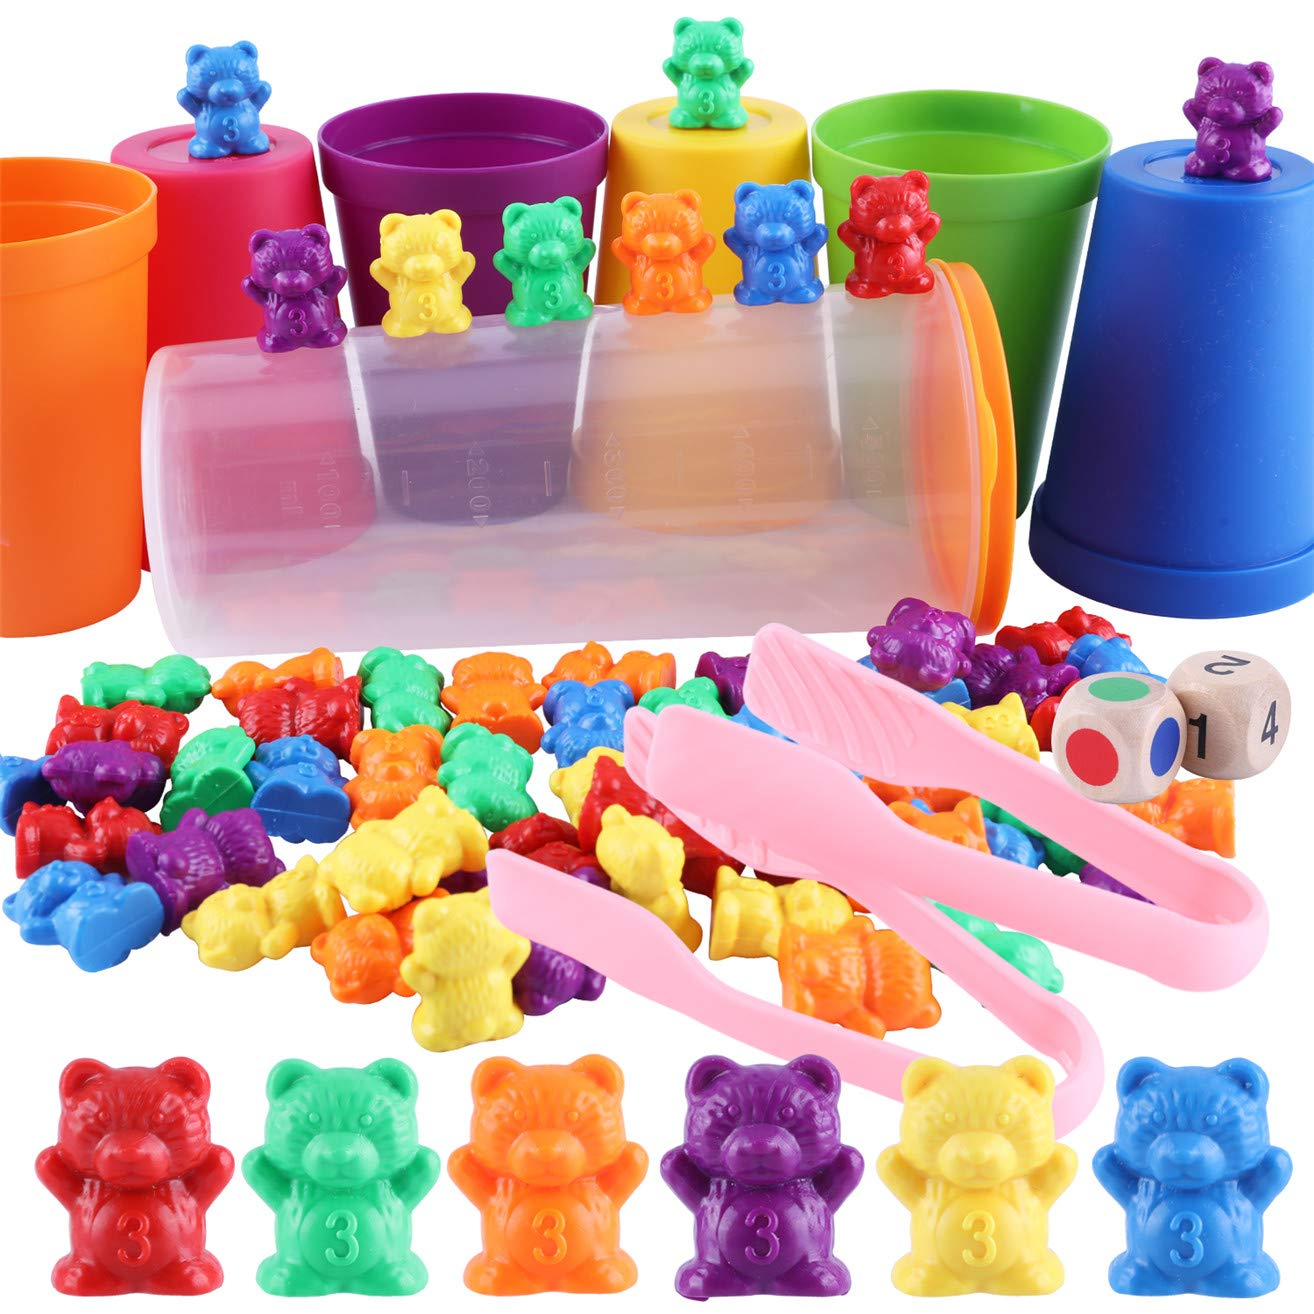 Miumiu Rainbow Counting Bears, 71pcs Colorful Counting Bears Set with Matching Sorting Cups, Bear Counters and Dice Math Toddler Games Montessori Rainbow Matching Game Educational Color Sorting Toys